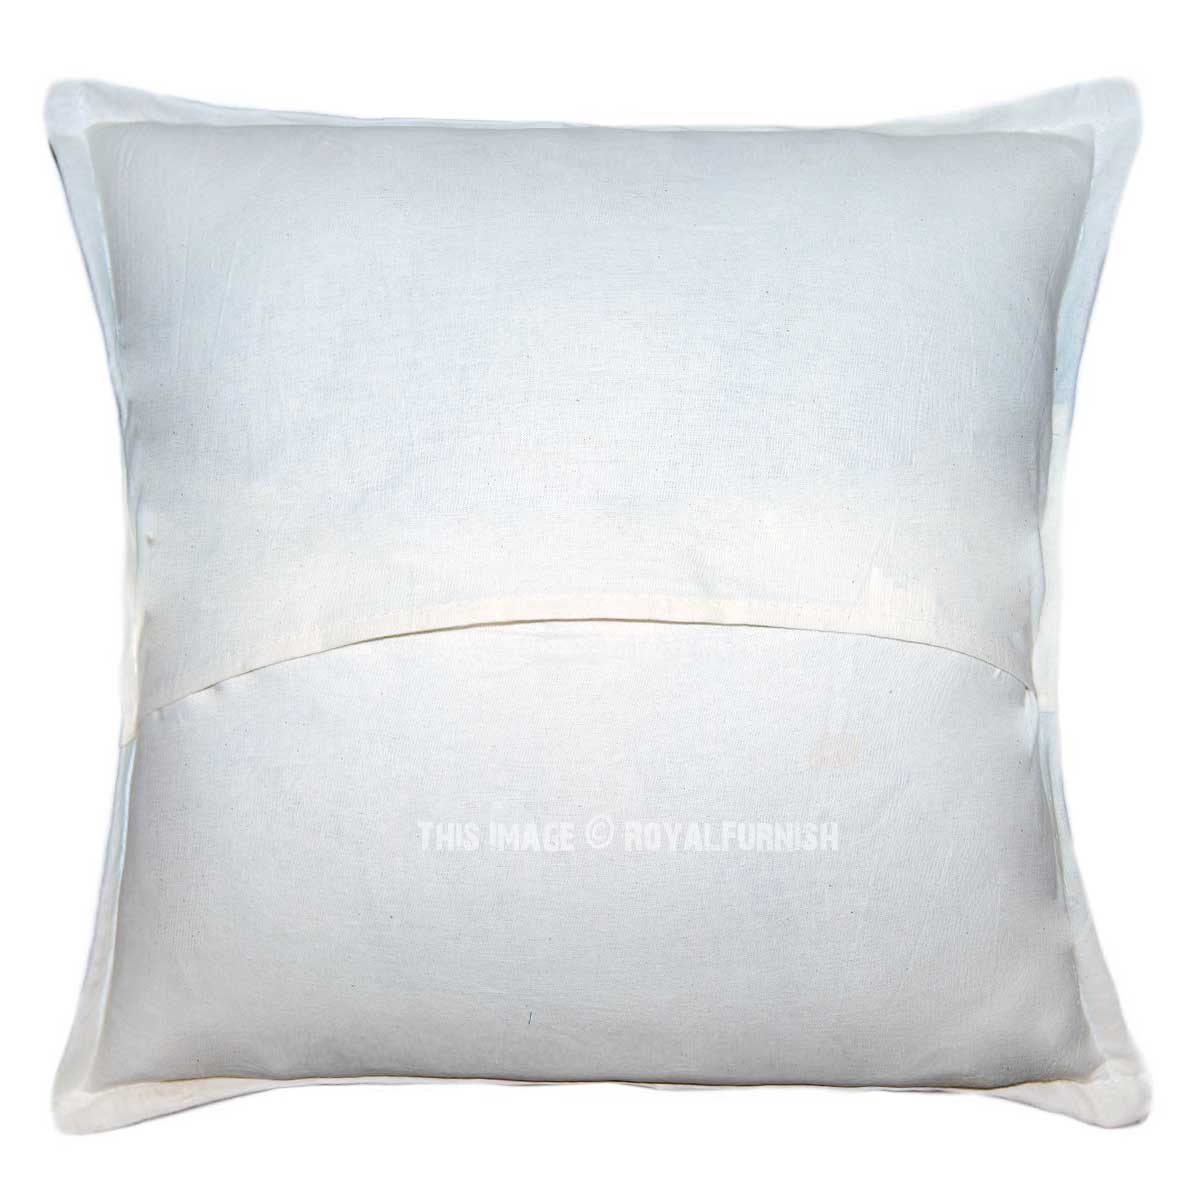 Decorative Pillow Cases White : 20X20 White Multi One-Of-A-Kind Handmade Decorative Pillow Case - RoyalFurnish.com